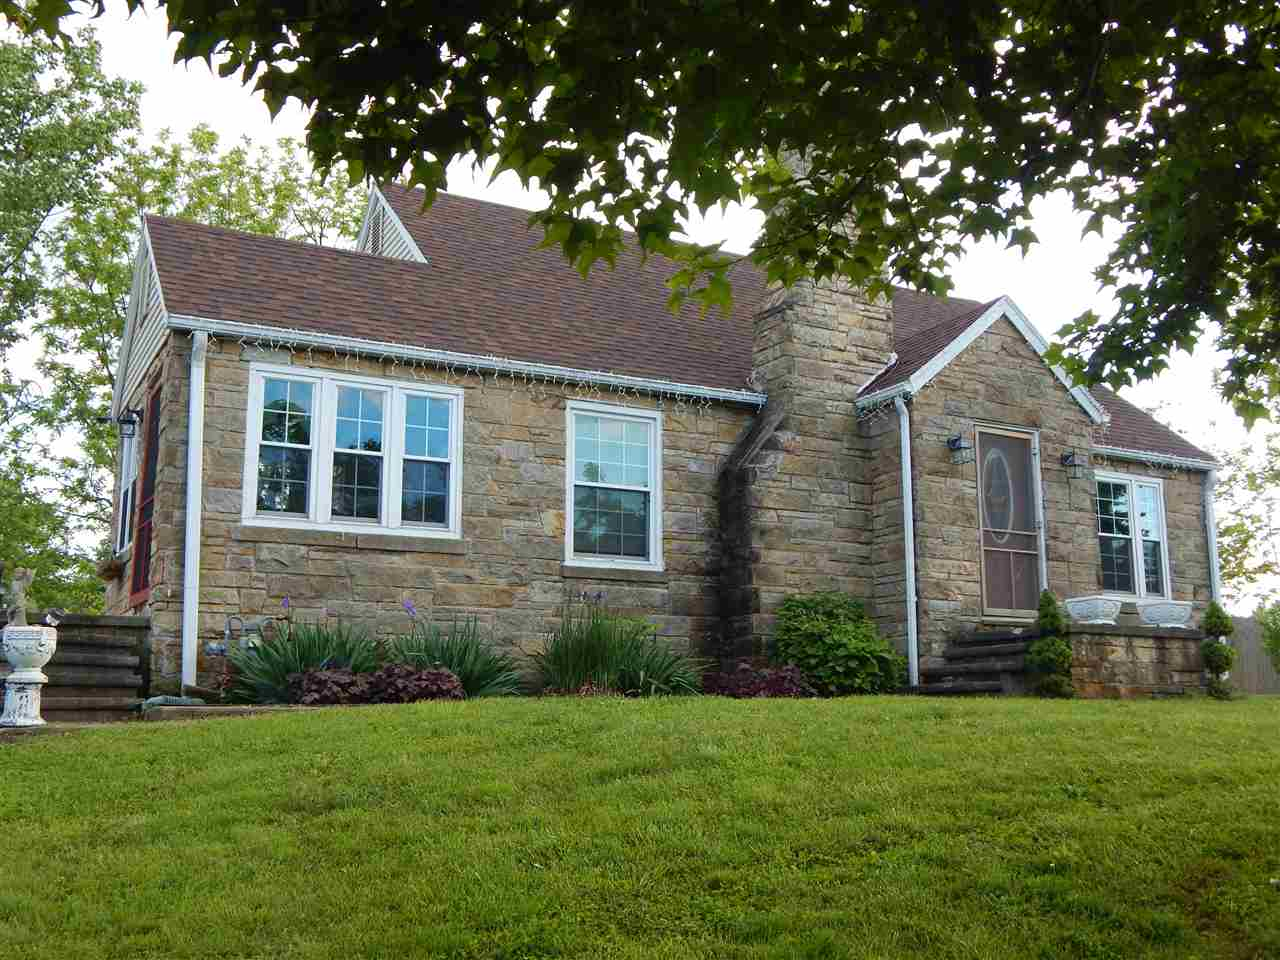 978 State Road 60 E, Mitchell, IN 47446